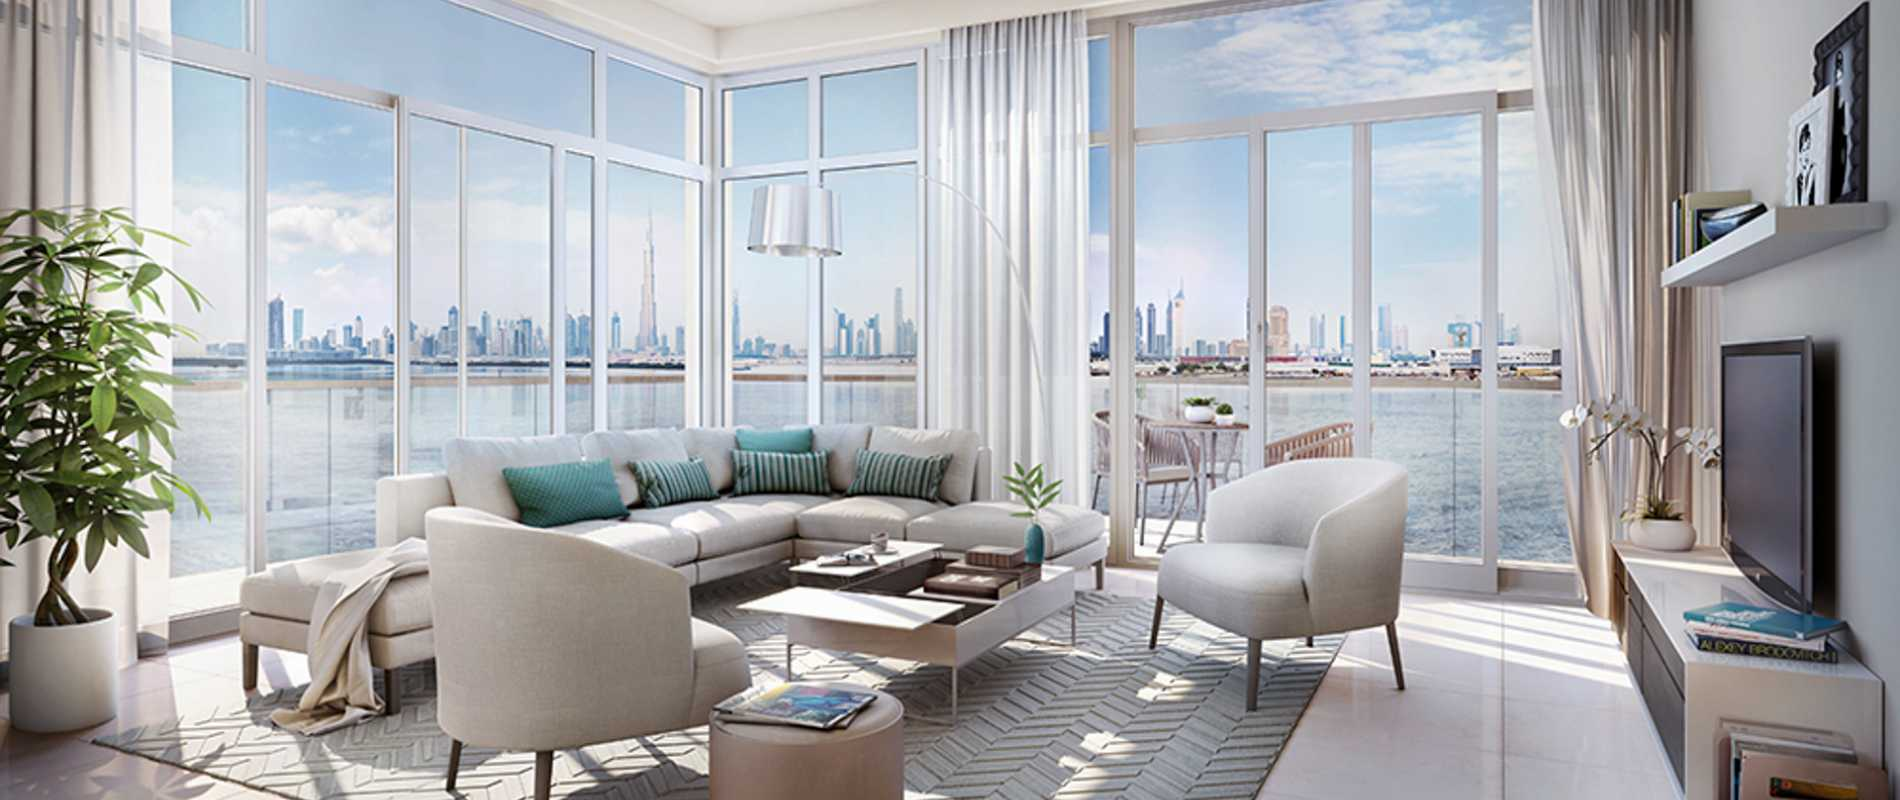 Luxury Property Dubai 2 Bedroom Apartment for sale in The Cove Dubai Creek Harbour